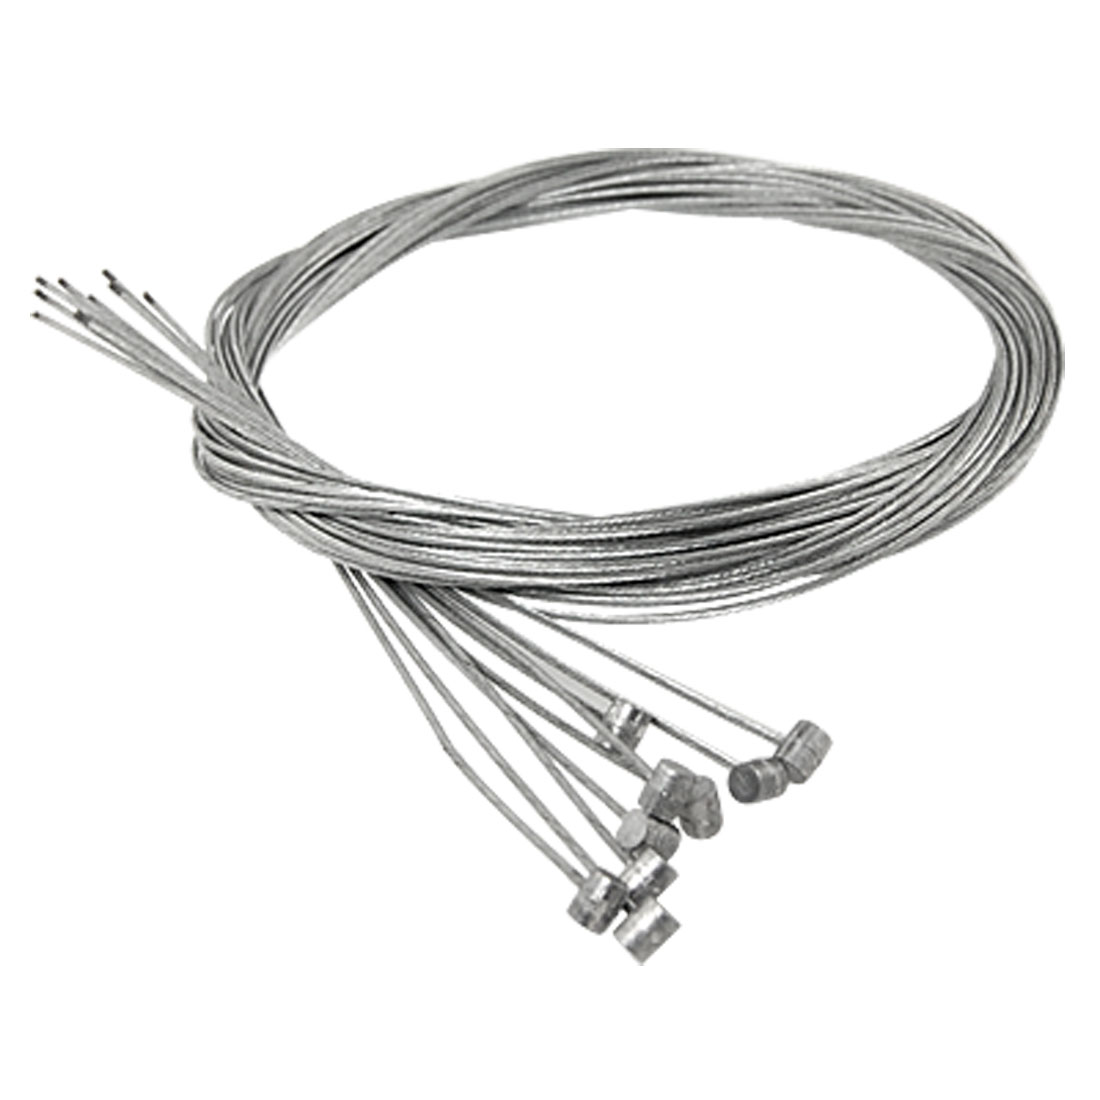 10 Pcs Silver Tone Steel 1.77M Rear Brake Cable for Bicycle